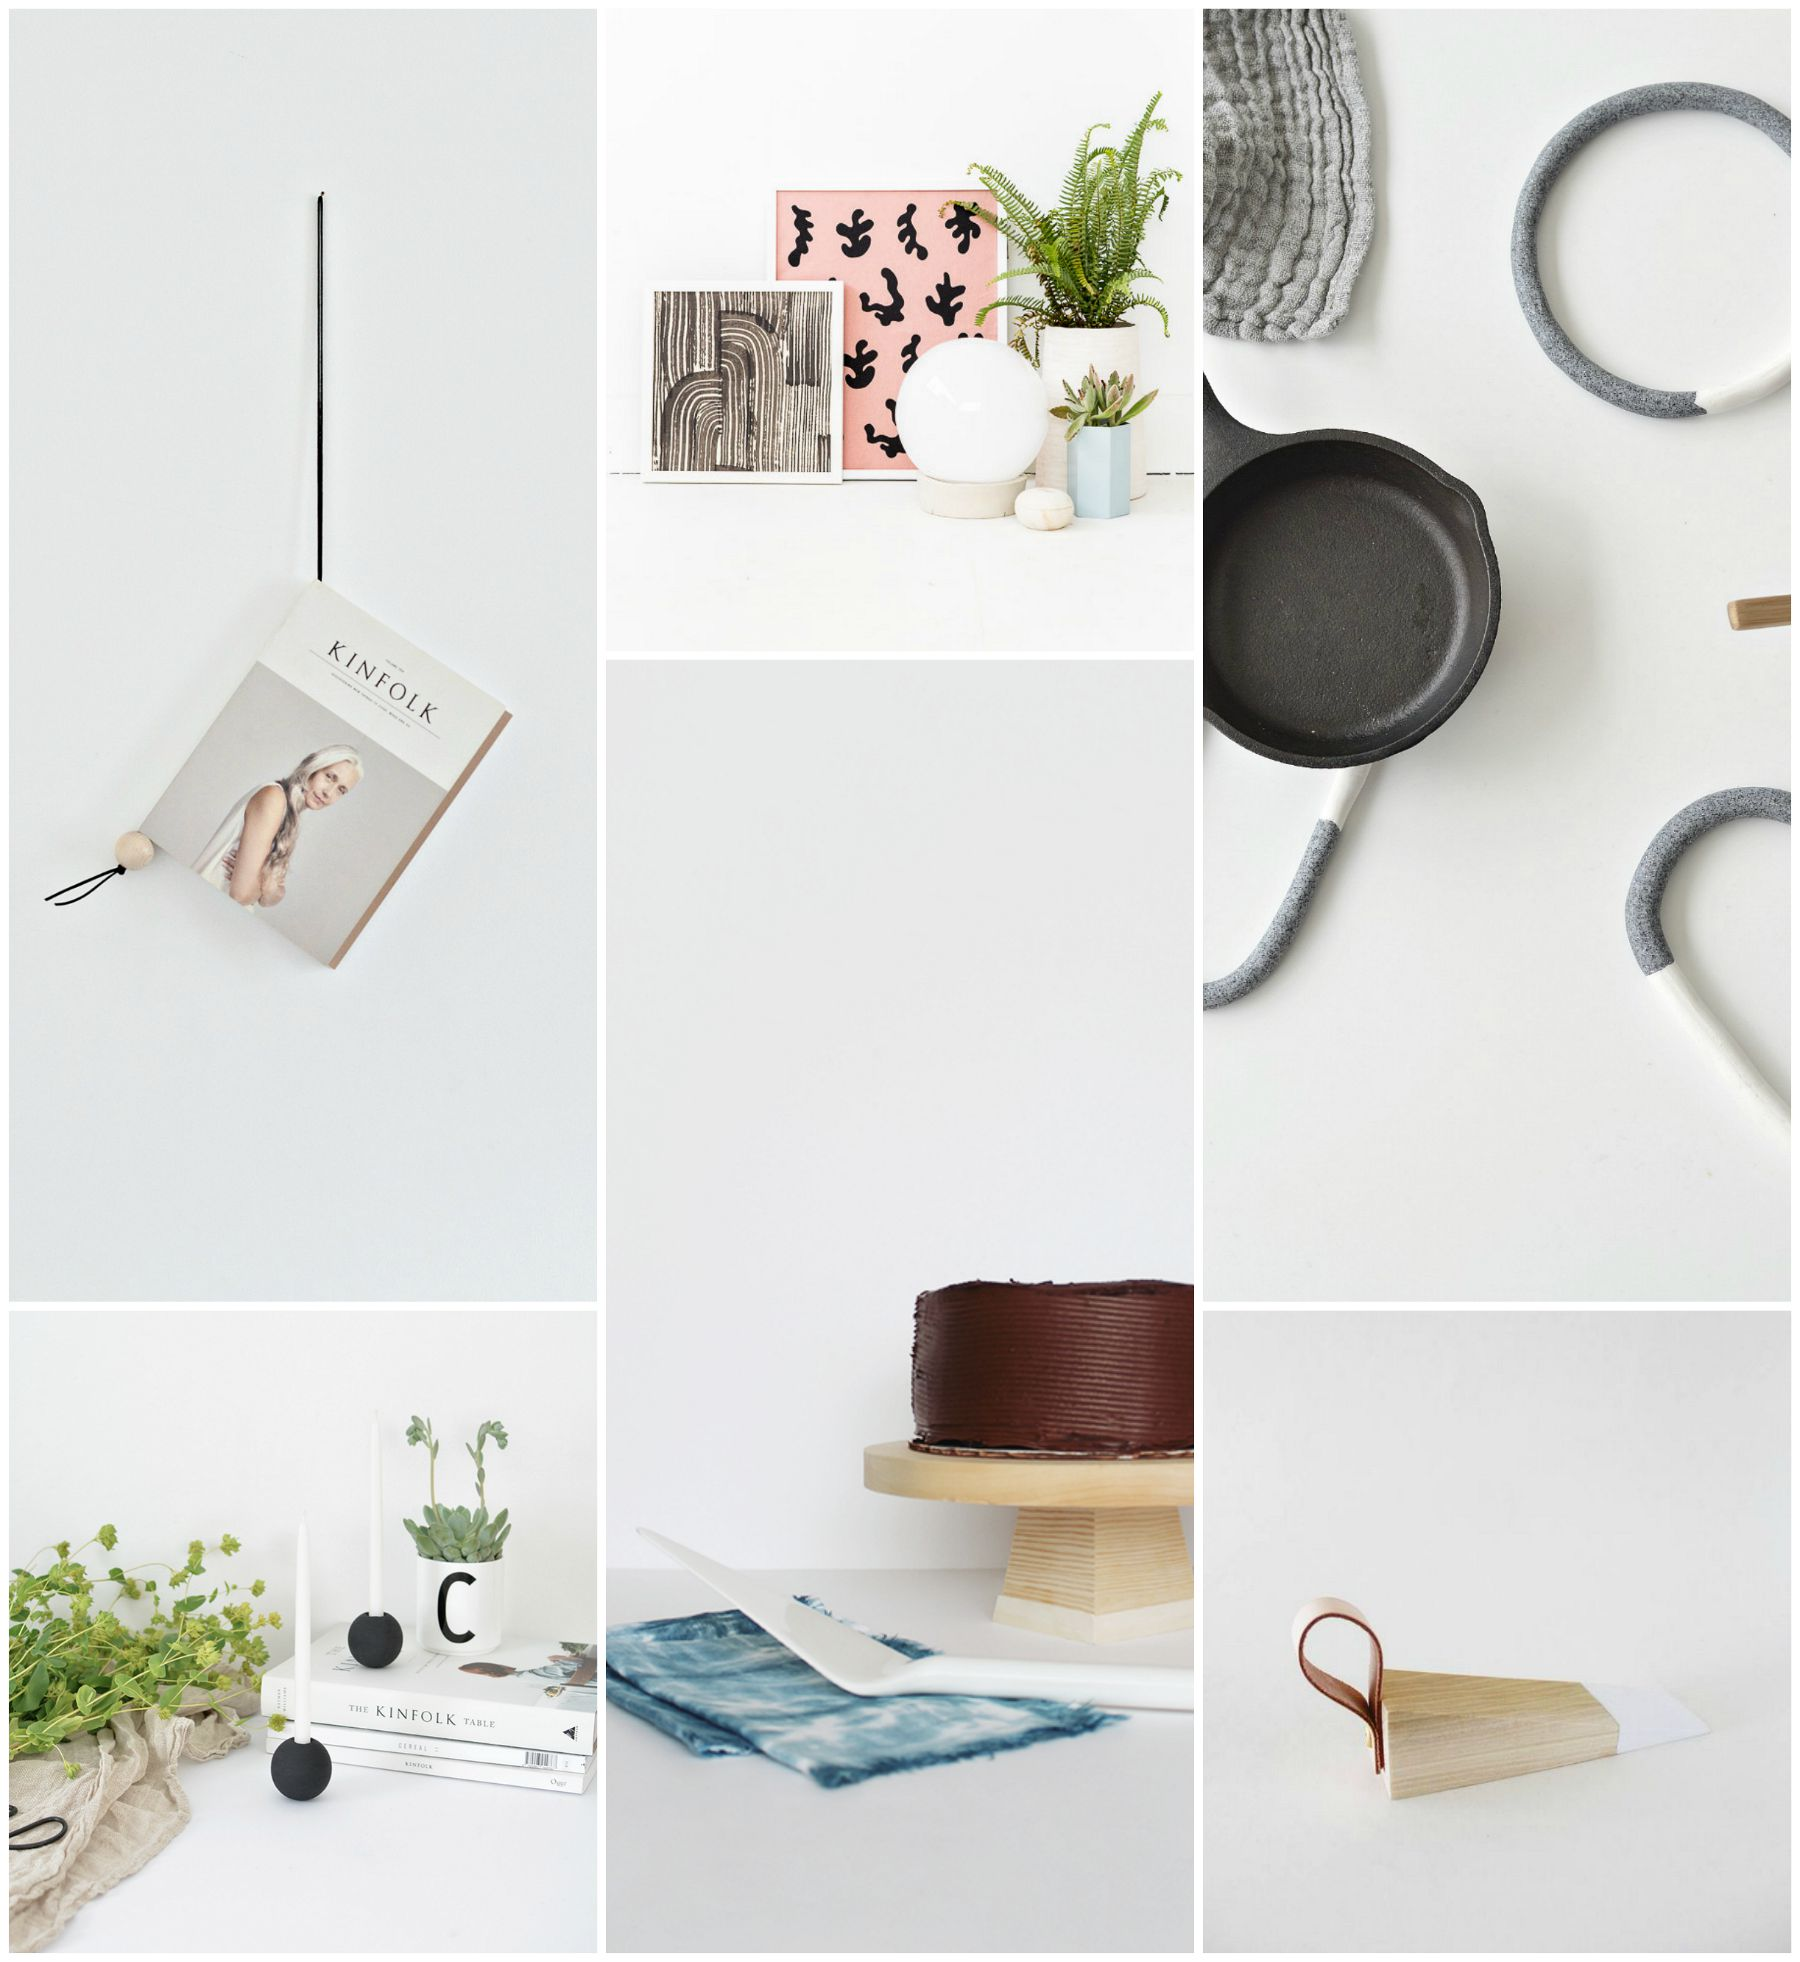 12 Quick Diy Home Decor Ideas To Add A Unique Touch To Your